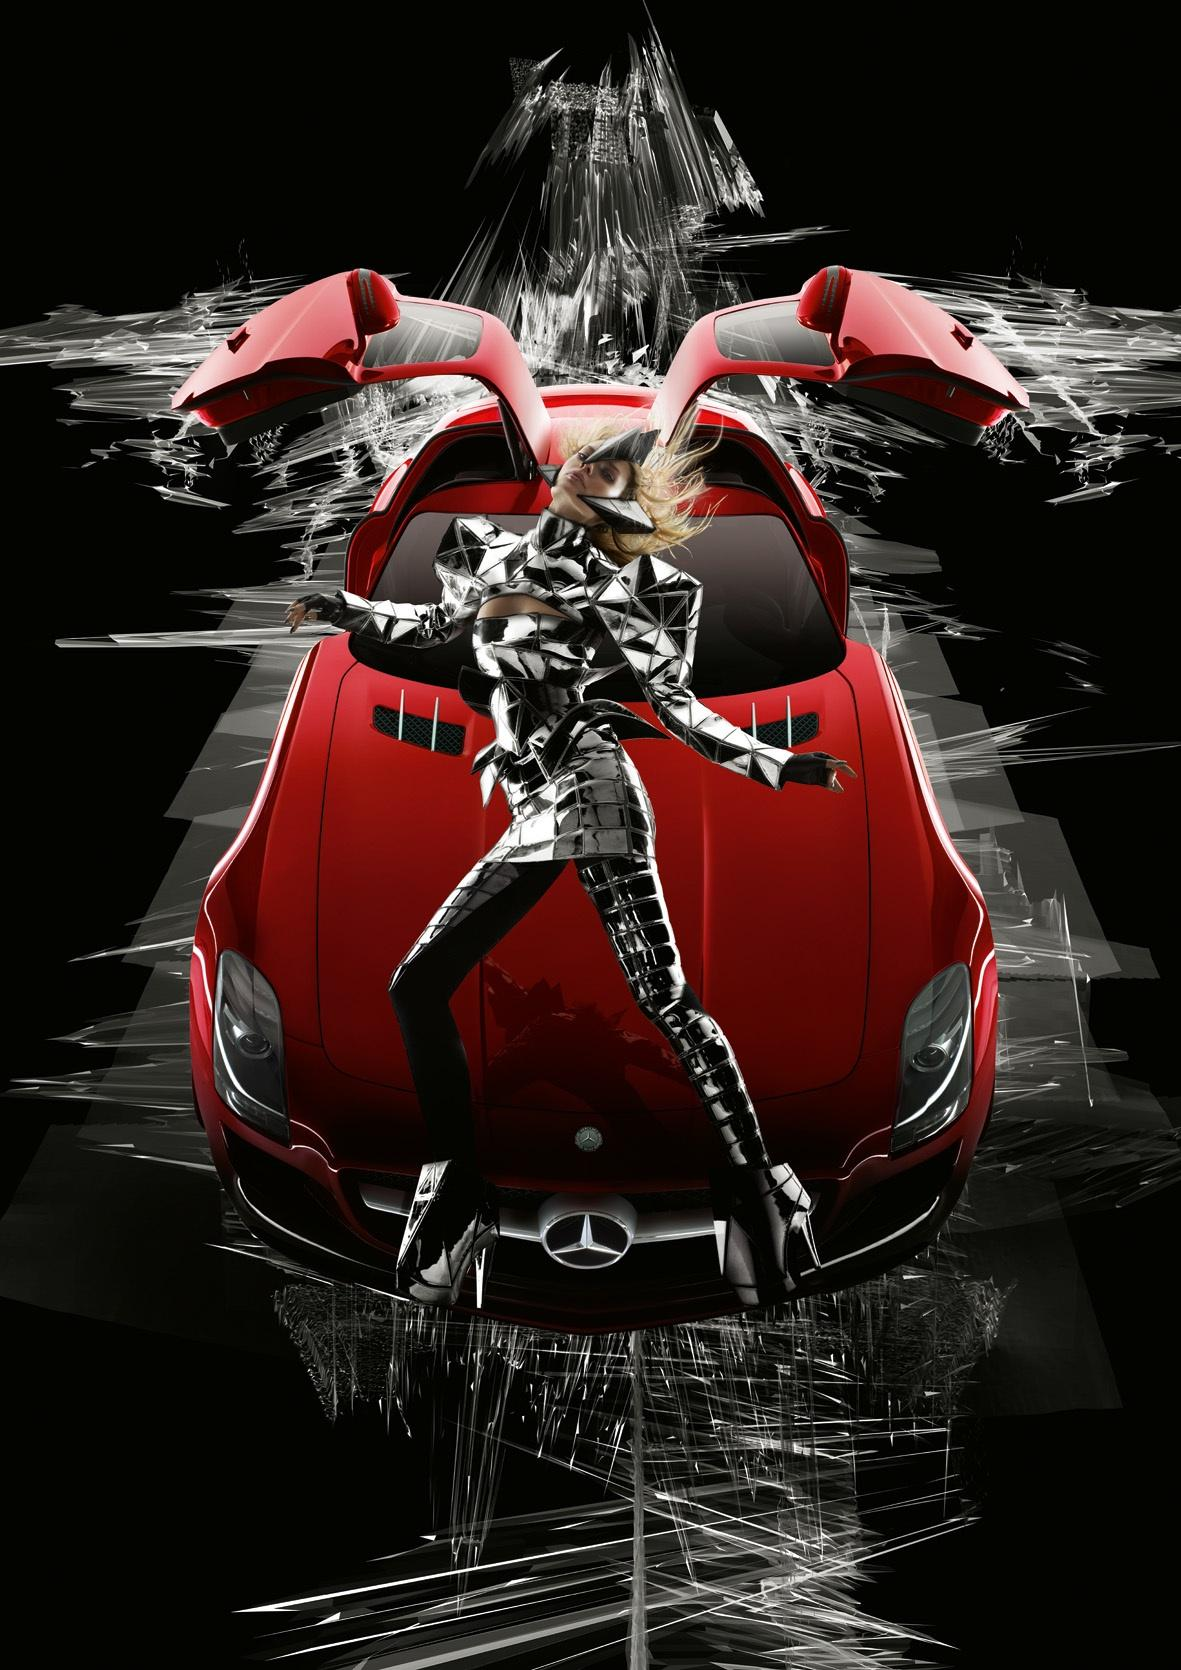 mercedes-sls-campaign-by-nick-knight-and-gareth-pugh.jpg 1,181×1,670 pixels